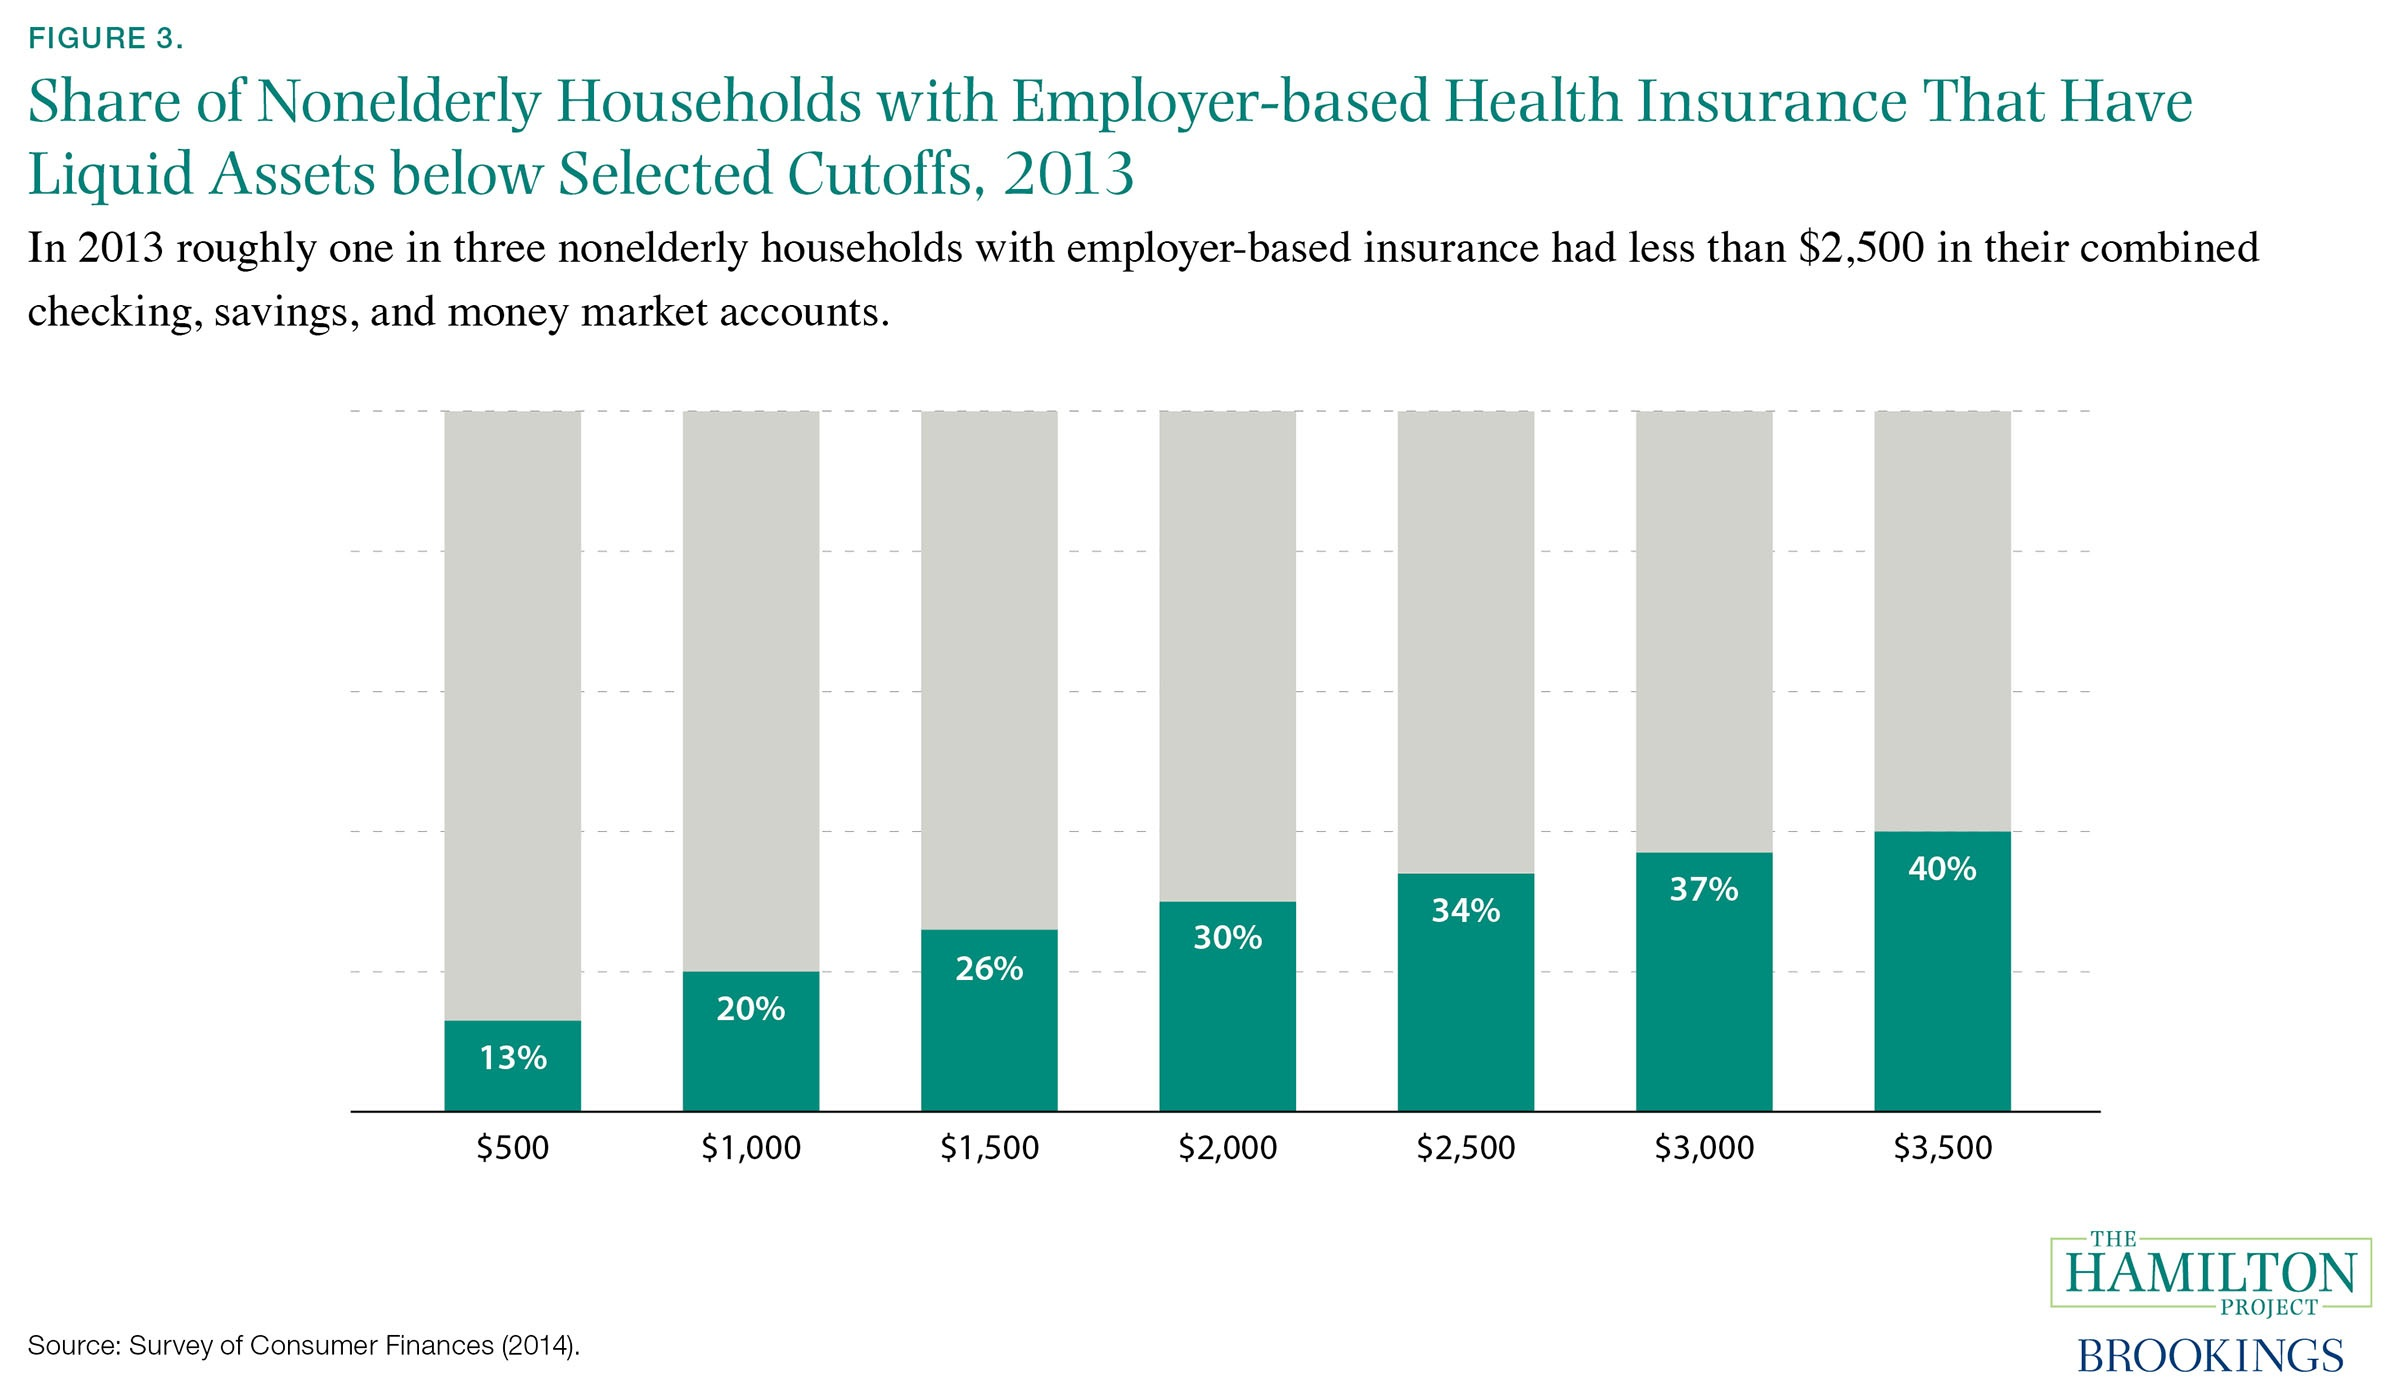 Six Economic Facts About Health Care And Health Insurance Markets  Millions Of Households With Health Insurance Do Not Have Enough Cash On  Hand To Pay Outofpocket Medical Expenses In The Event Of A Major Health  Shock